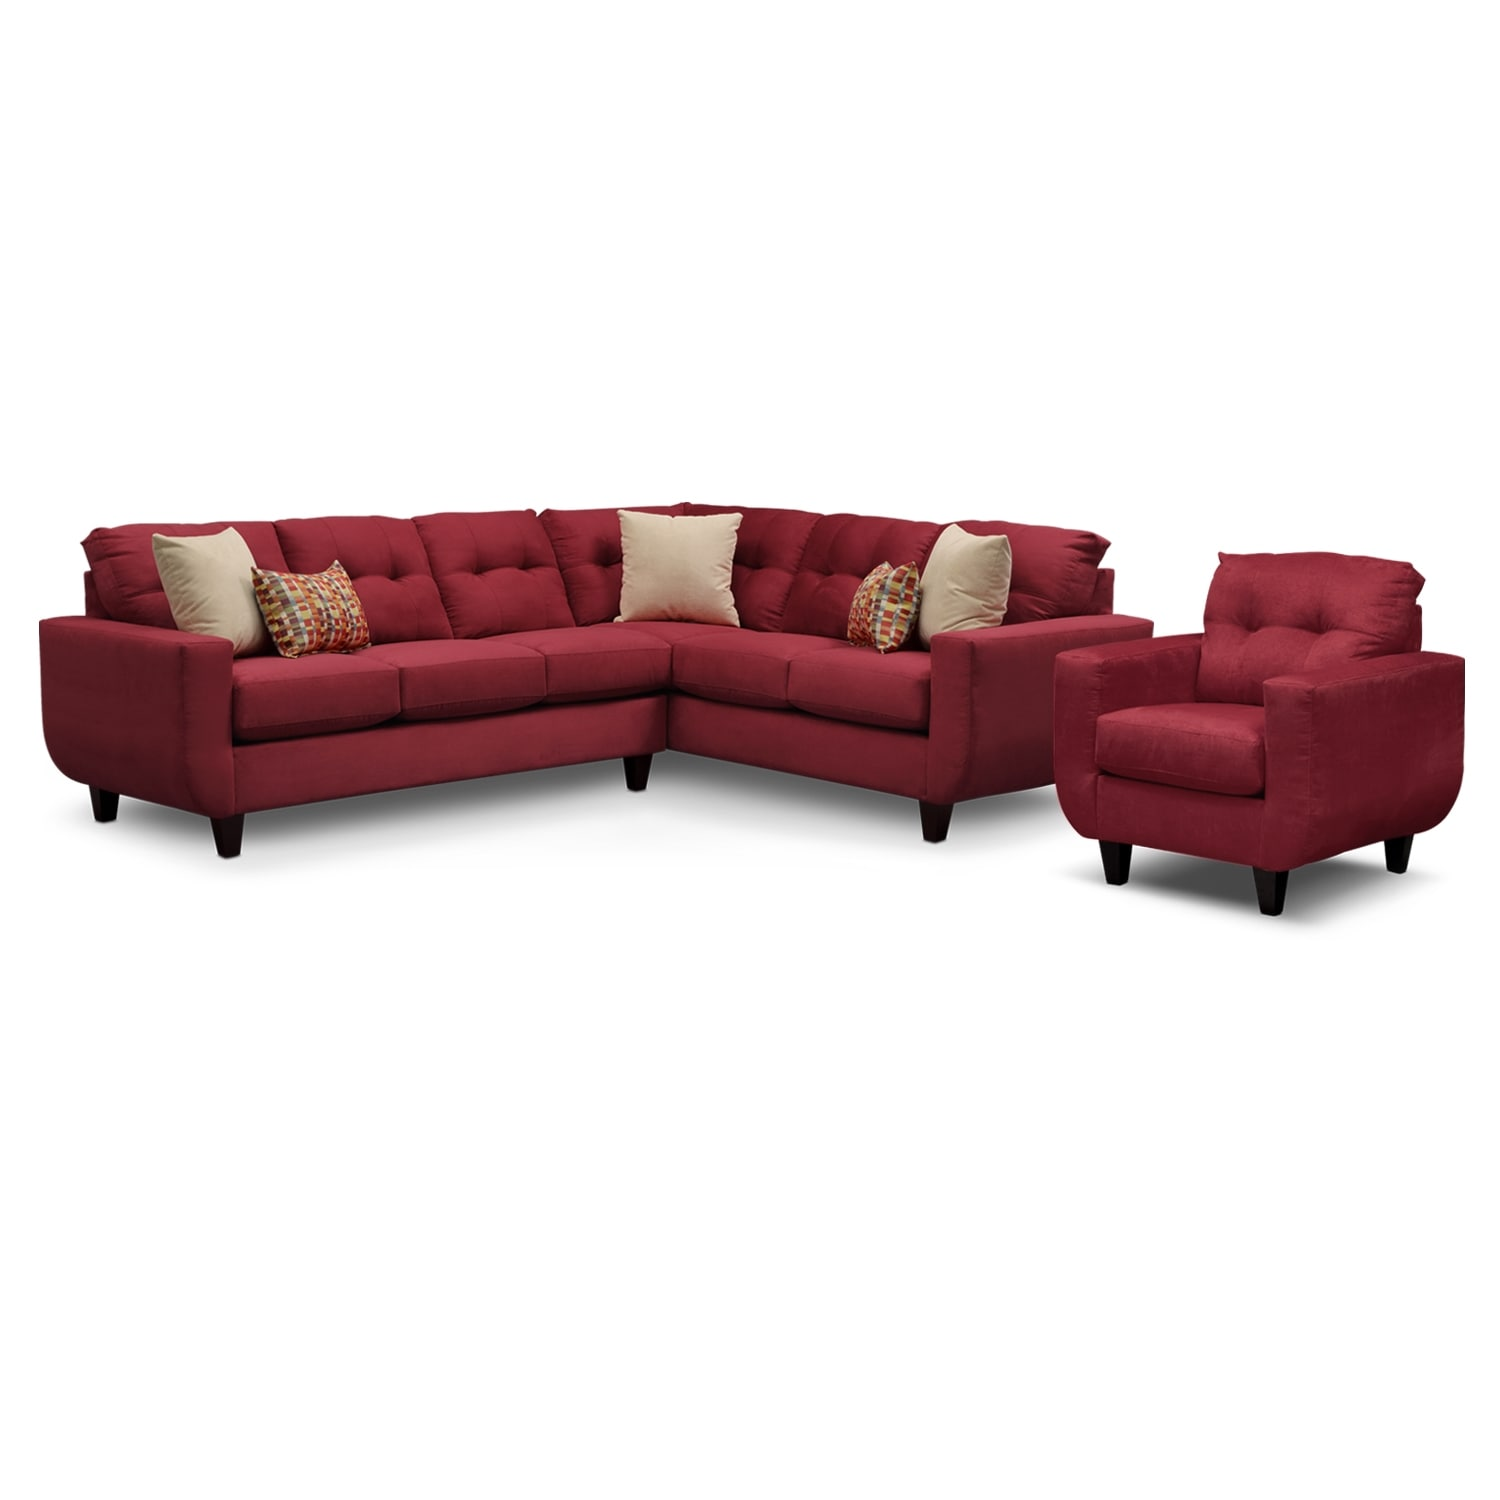 Living Room Furniture - West Village 2-Piece Sectional and Chair Set - Red